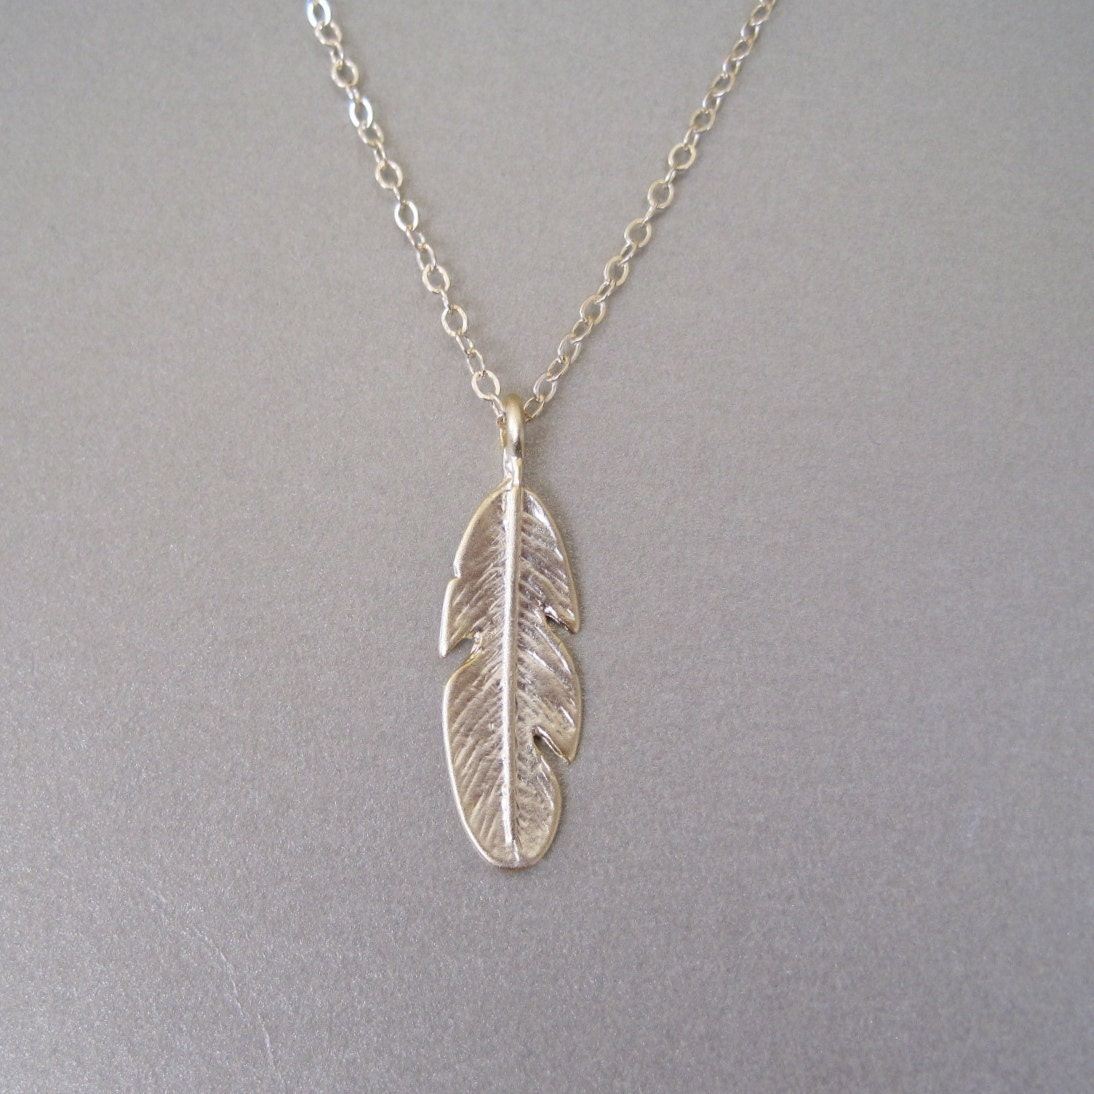 small gold leaf pendant necklace